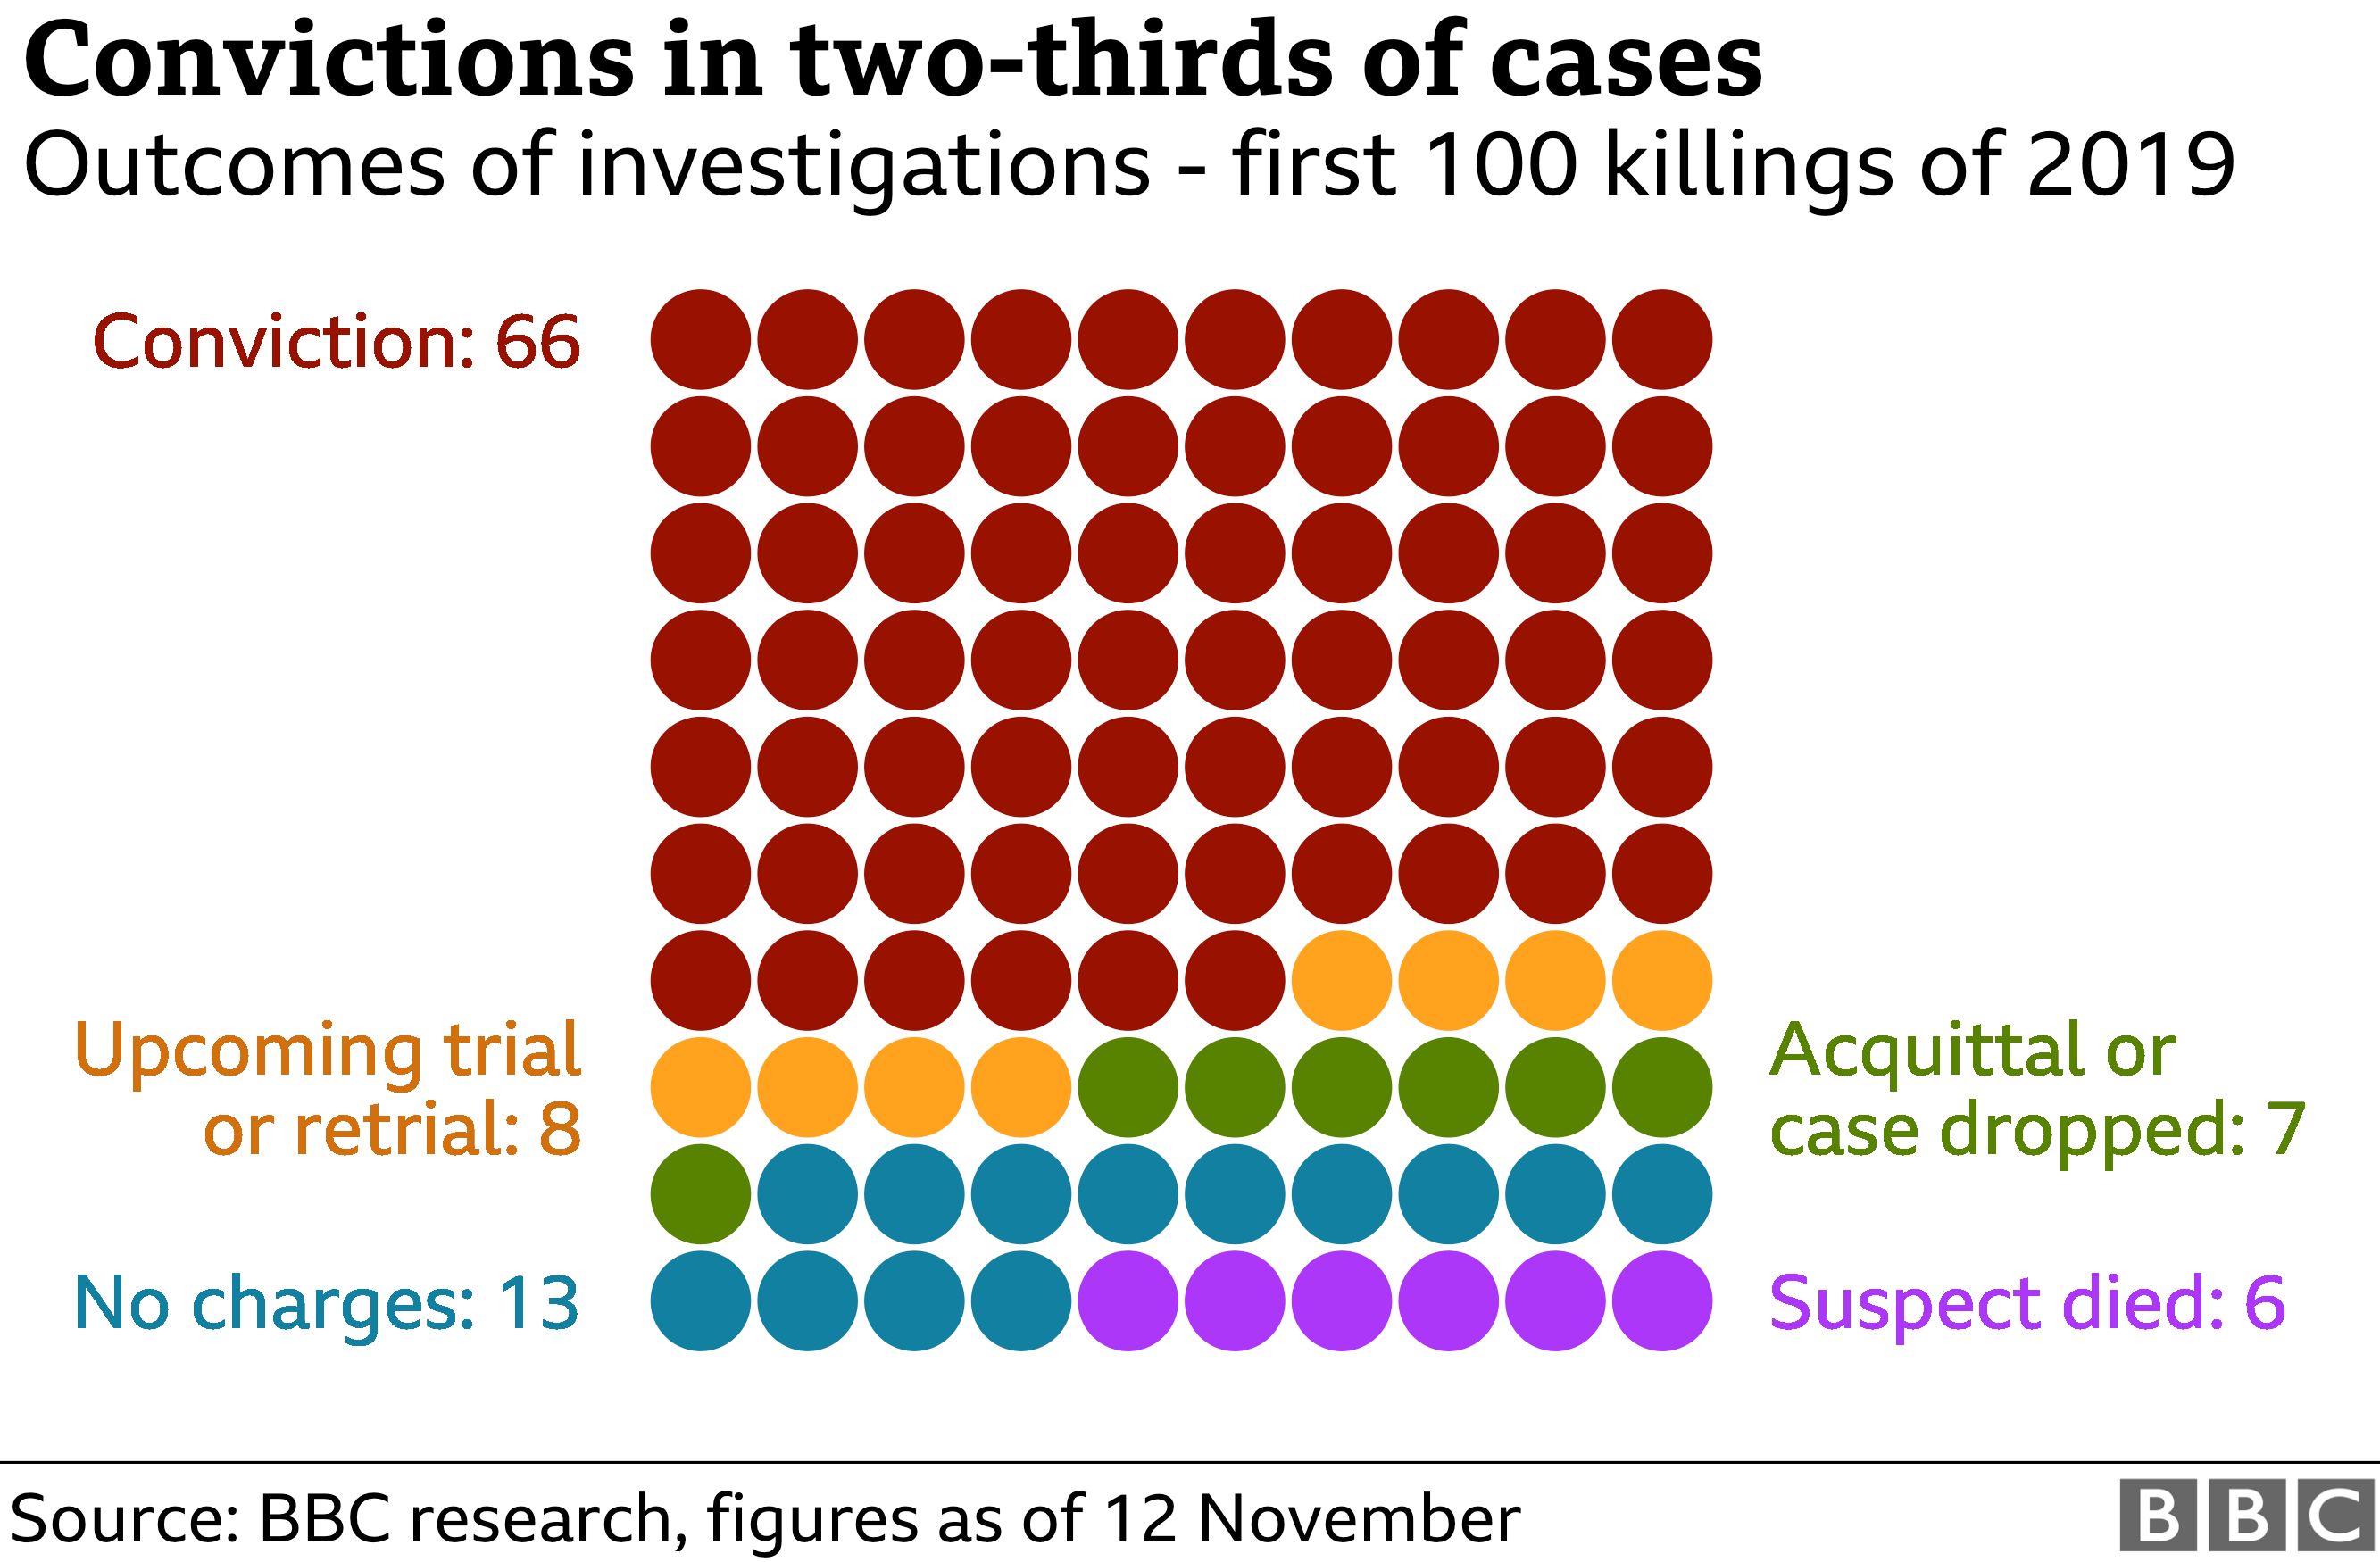 Chart showing convictions in two-thirds of cases